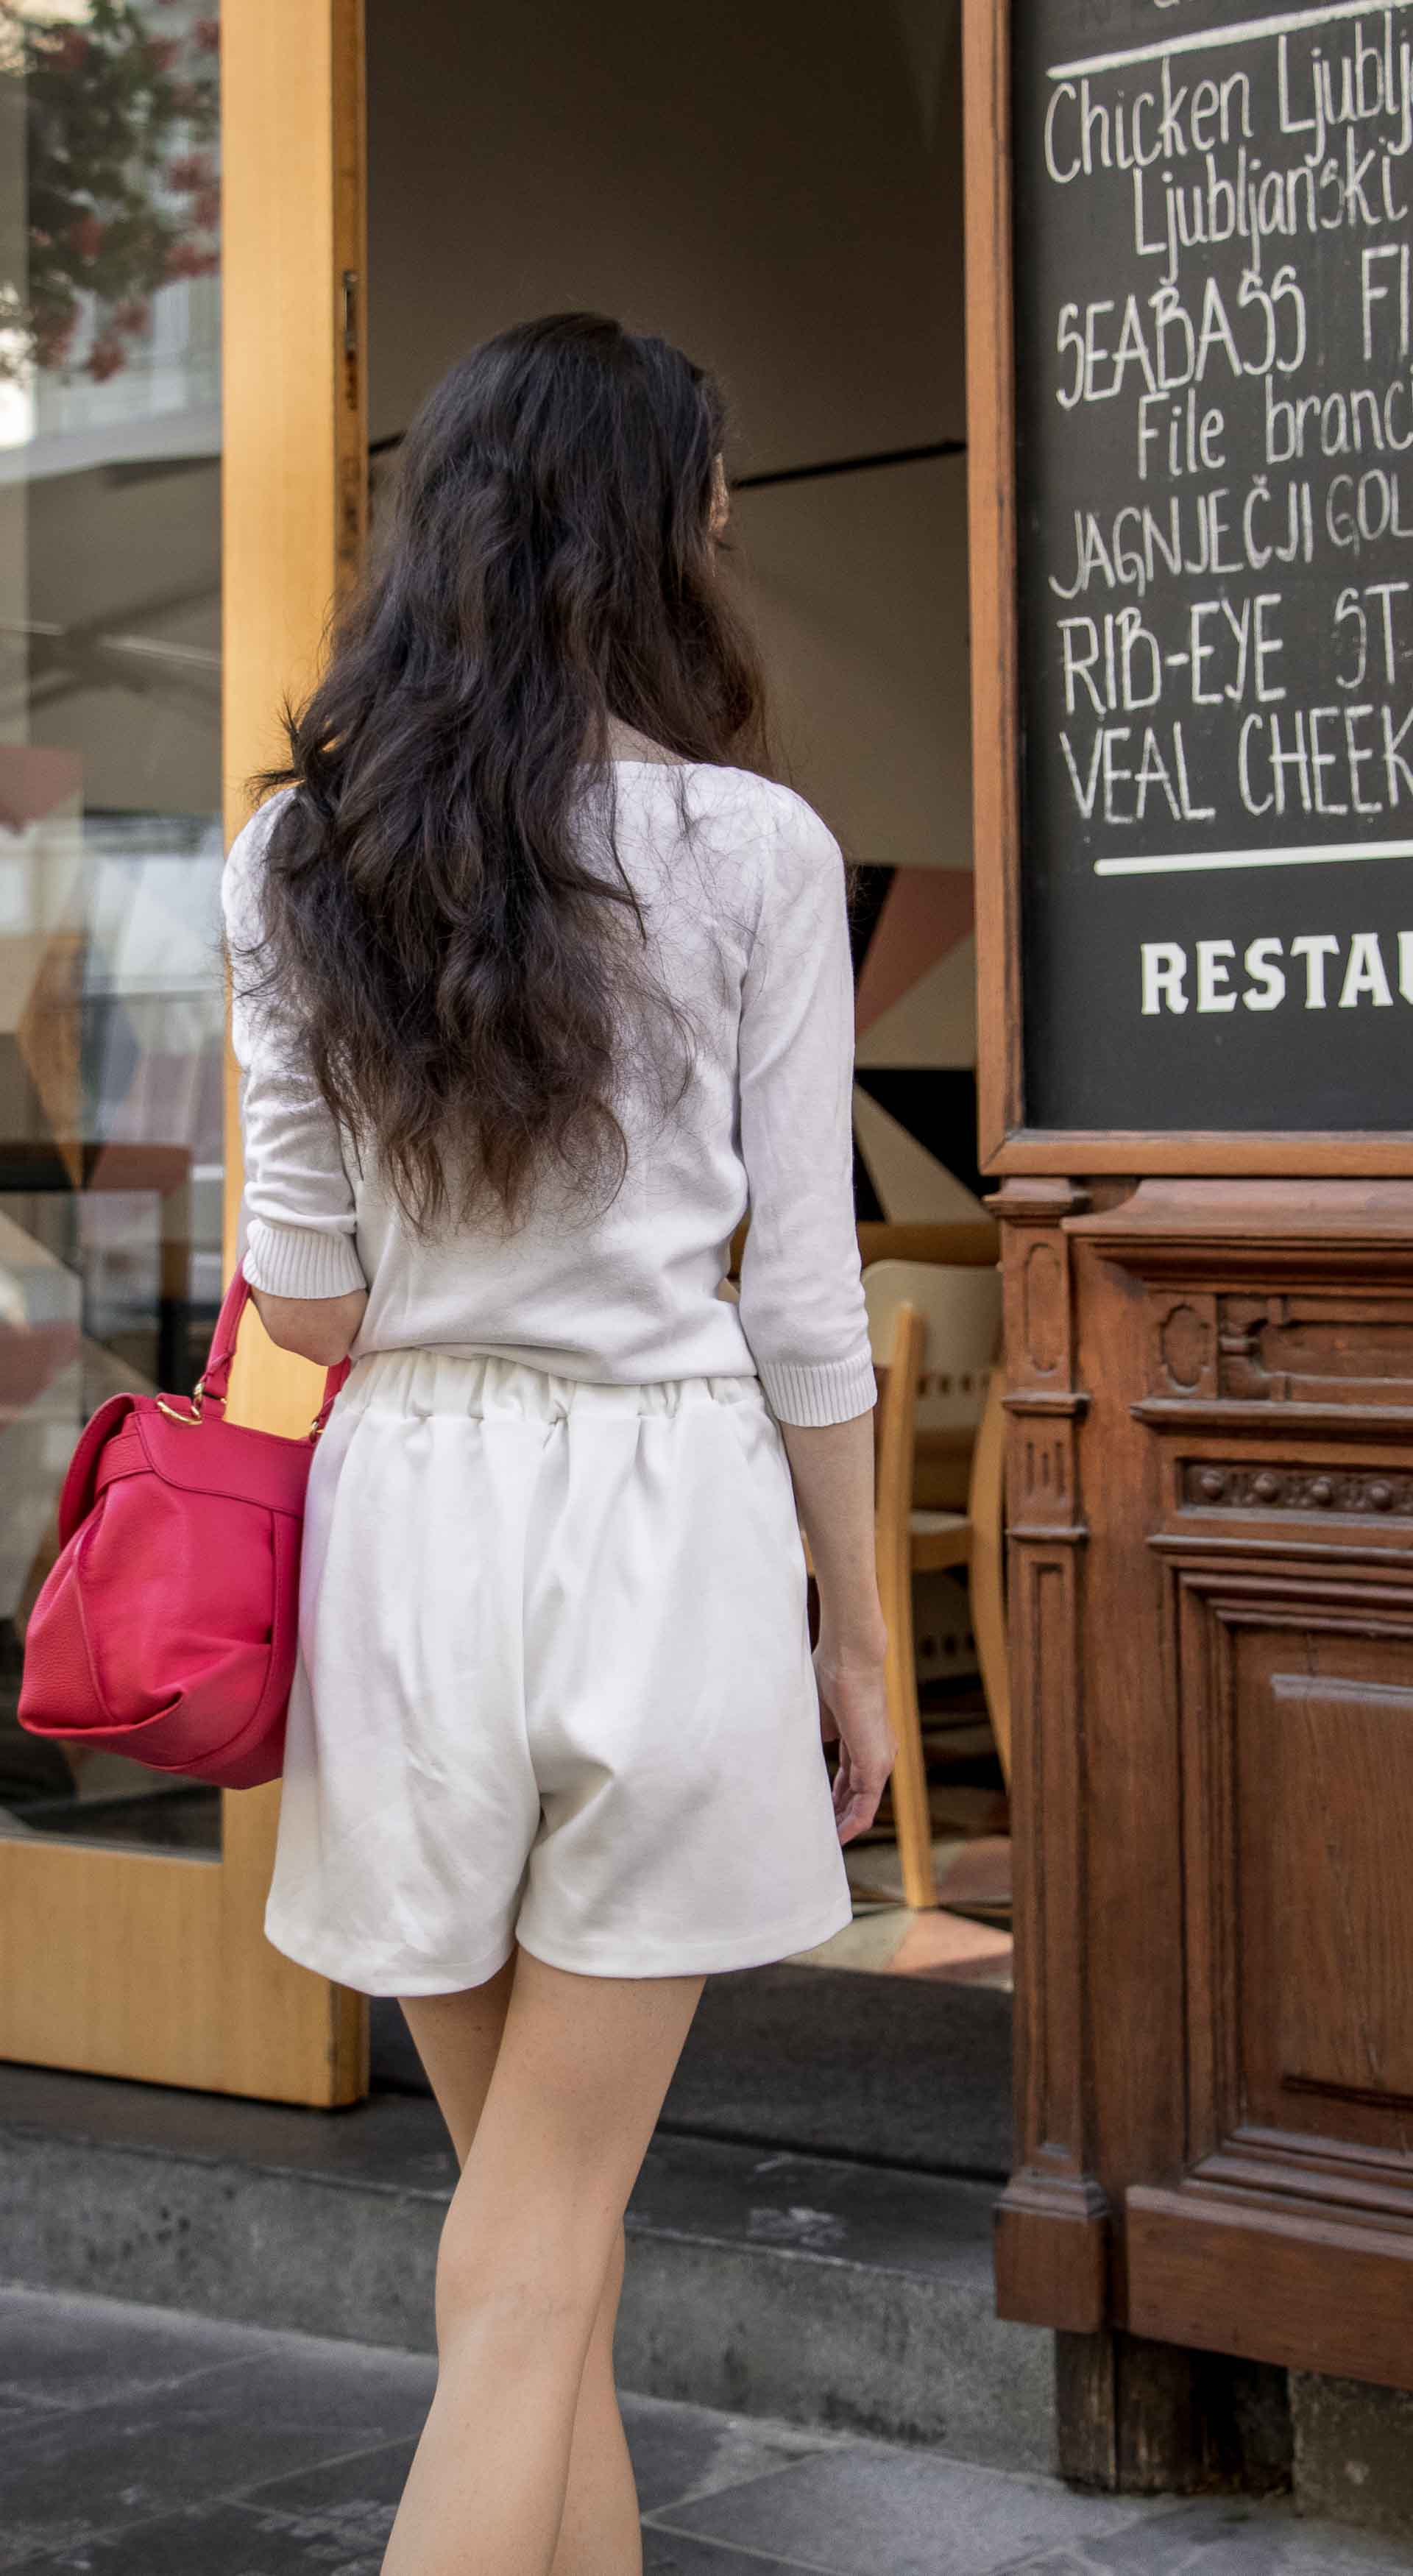 Slovenska modna blogerka Veronika Lipar of Brunette from Wall wearing all in white outfit, a white sweater, white tailored shorts, black flat slipper mules, pink top handle bag, a paper bag on the street in Ljubljana when reading the menu on a table